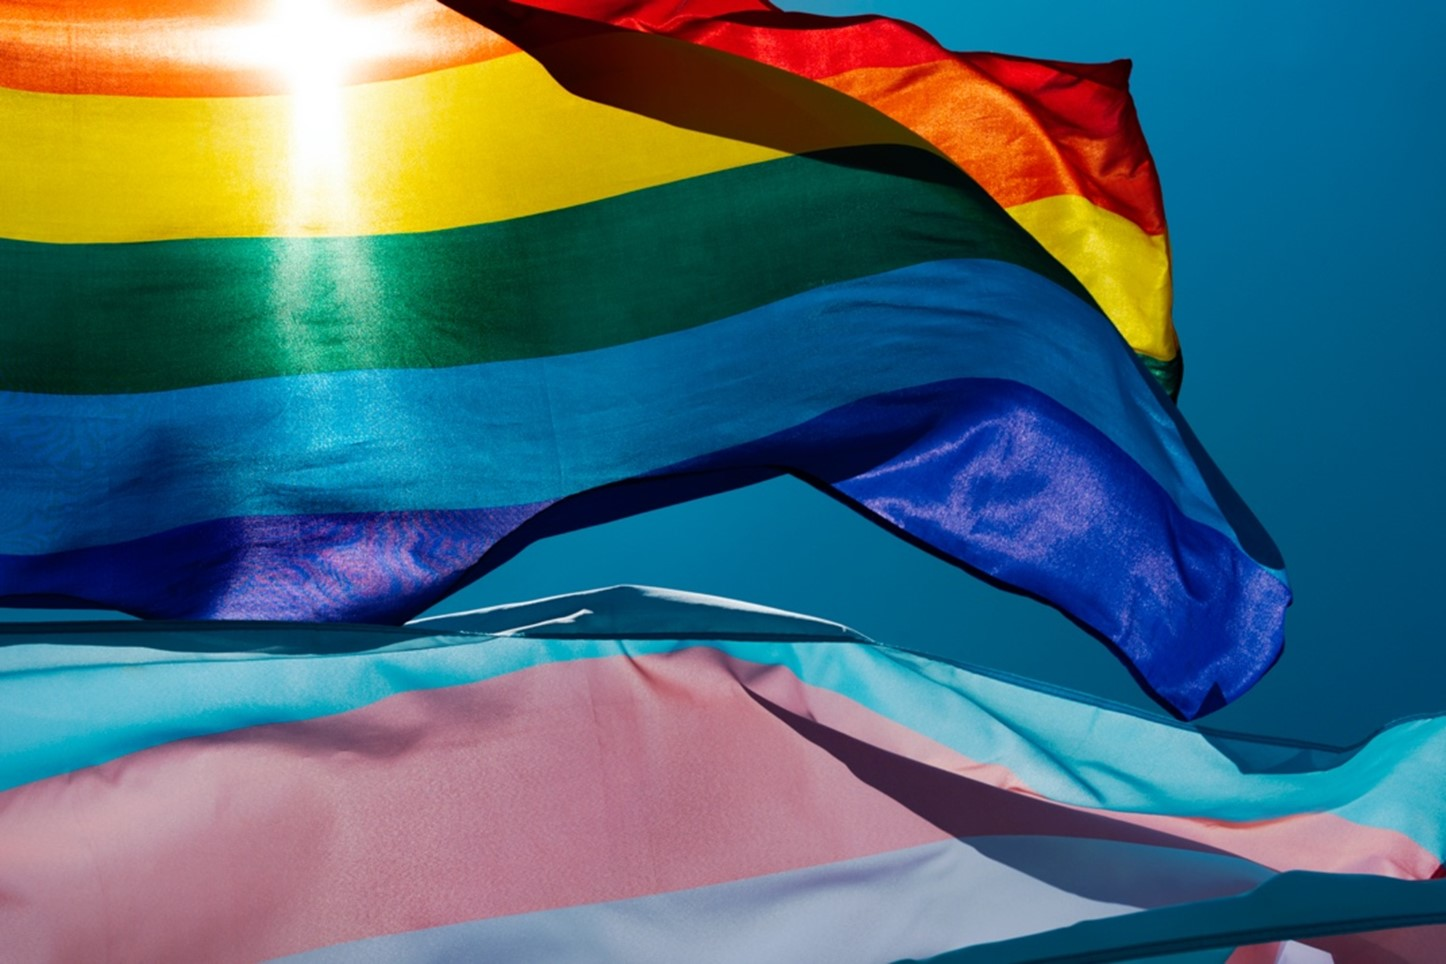 Respecting basic human rights is the foundation of social progress: LGBT Equality Act